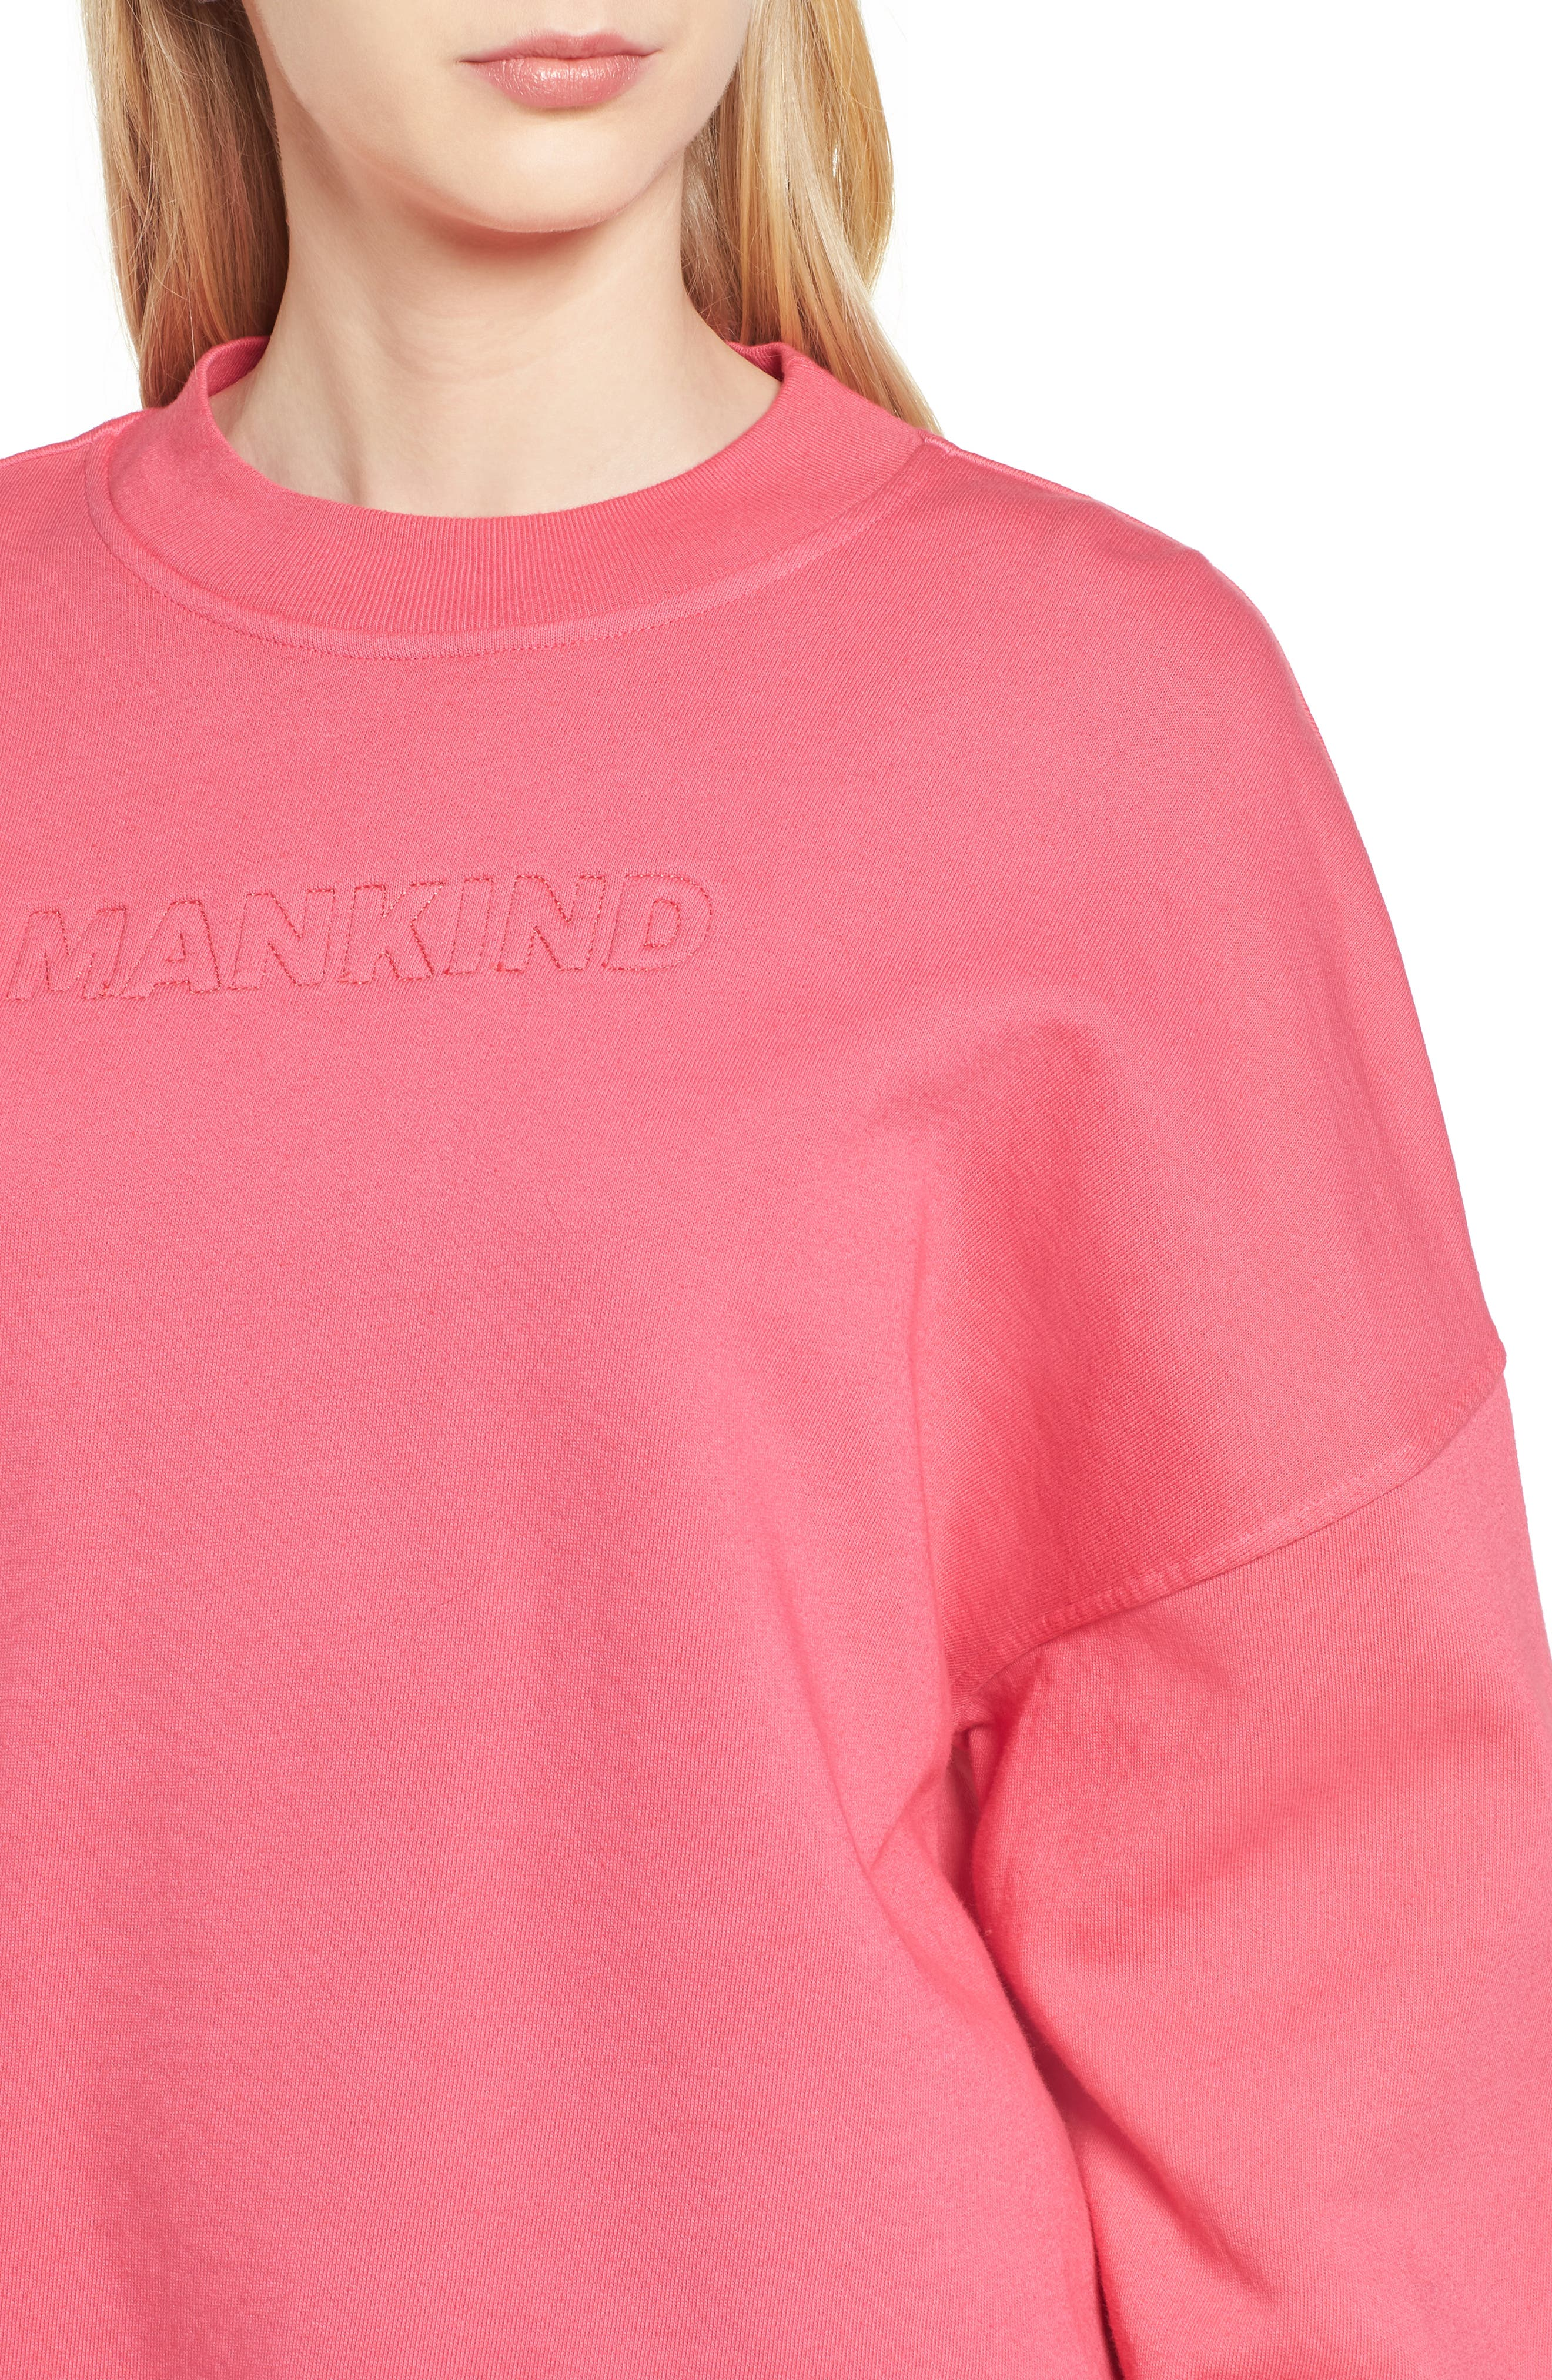 Mankind Outline Embroidered Sweatshirt,                             Alternate thumbnail 4, color,                             Honeysuckle